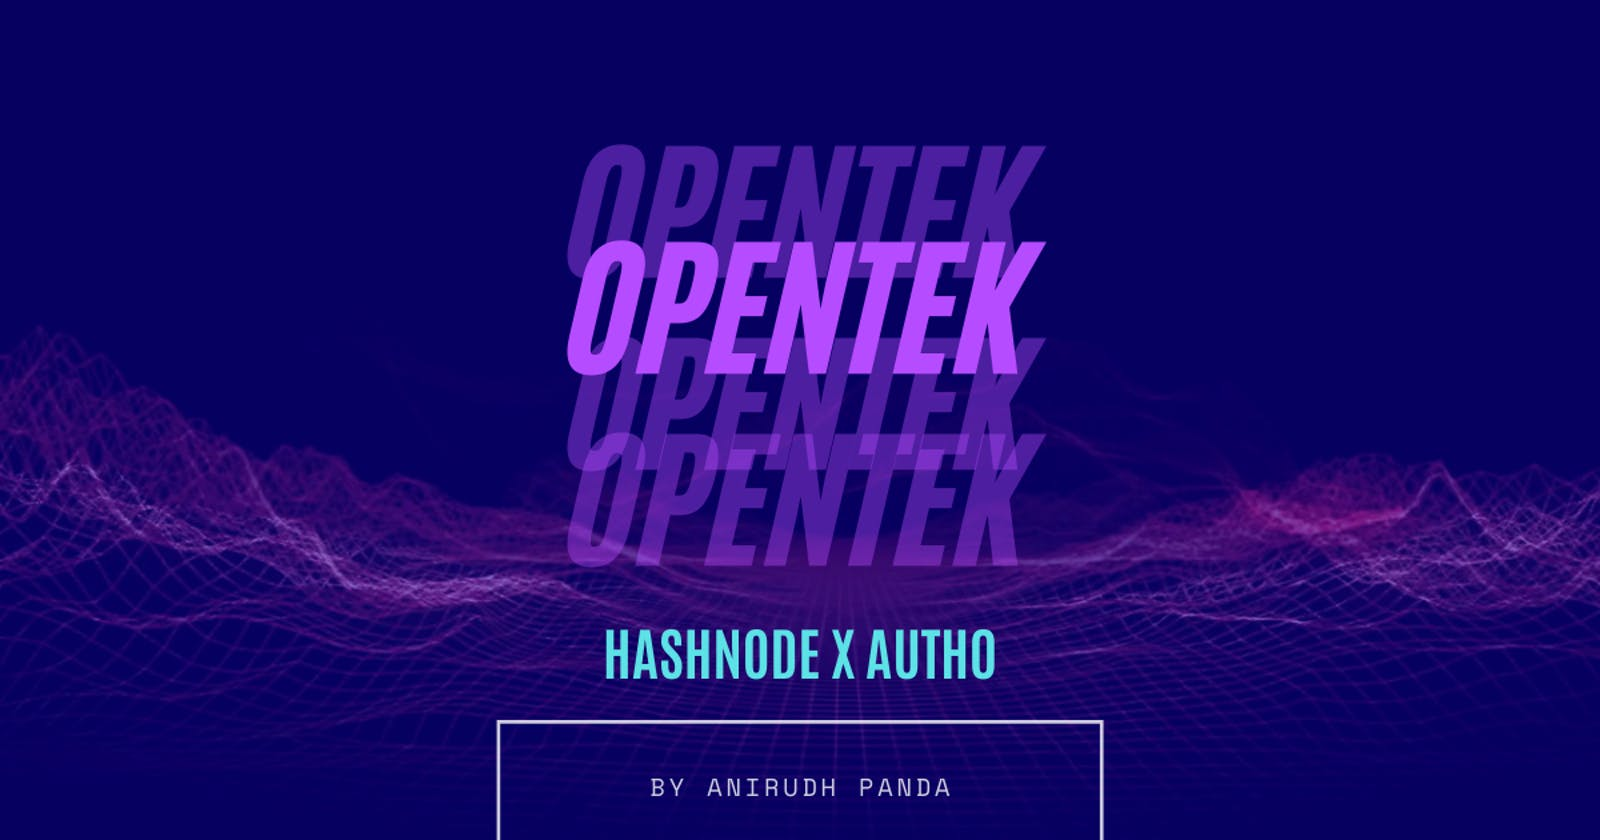 Introducing Opentek - If it is about Open Source, it is on Opentek ⚡️